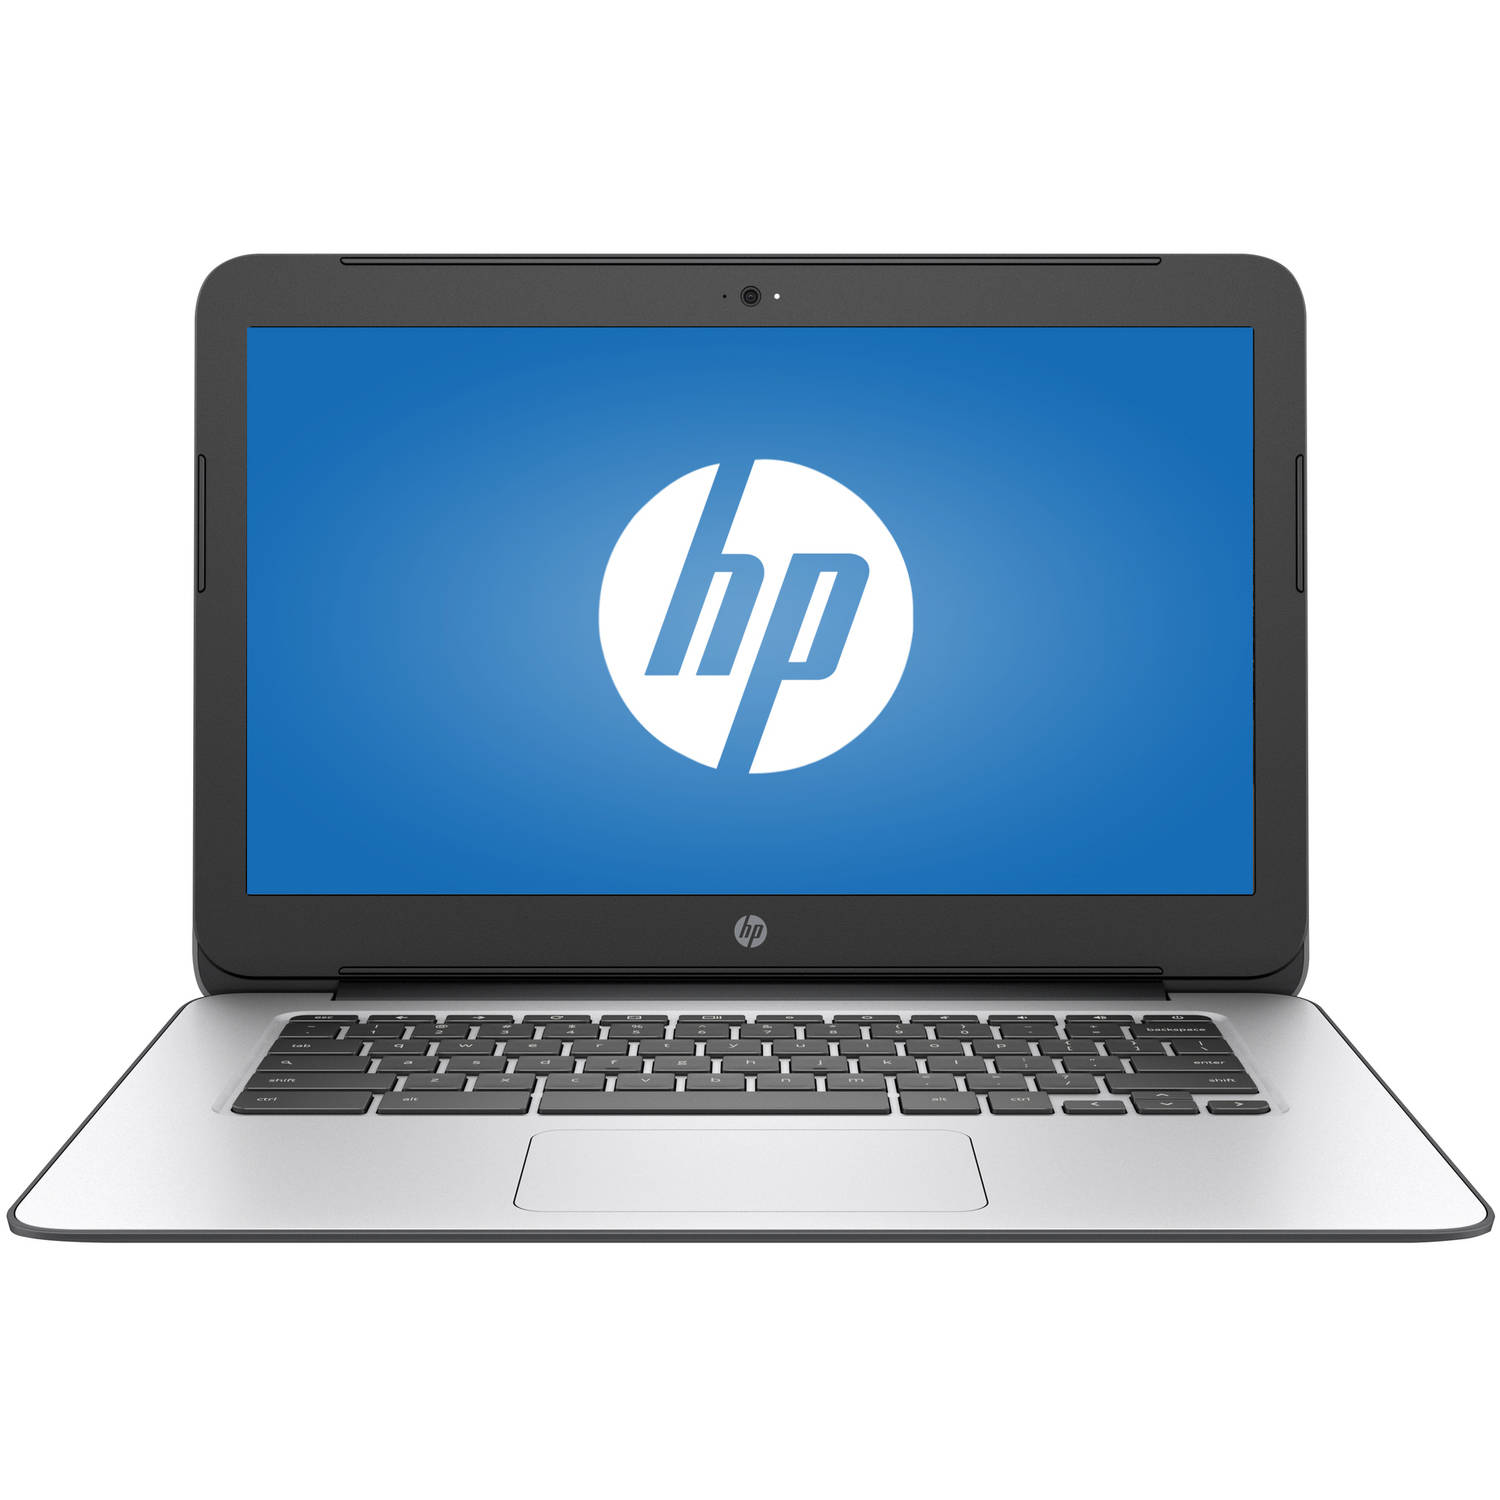 "HP SmartBuy 14"" Chromebook PC with Intel Celeron N2840 Processor, 2GB Memory, 16GB eMMC Drive and Chrome"